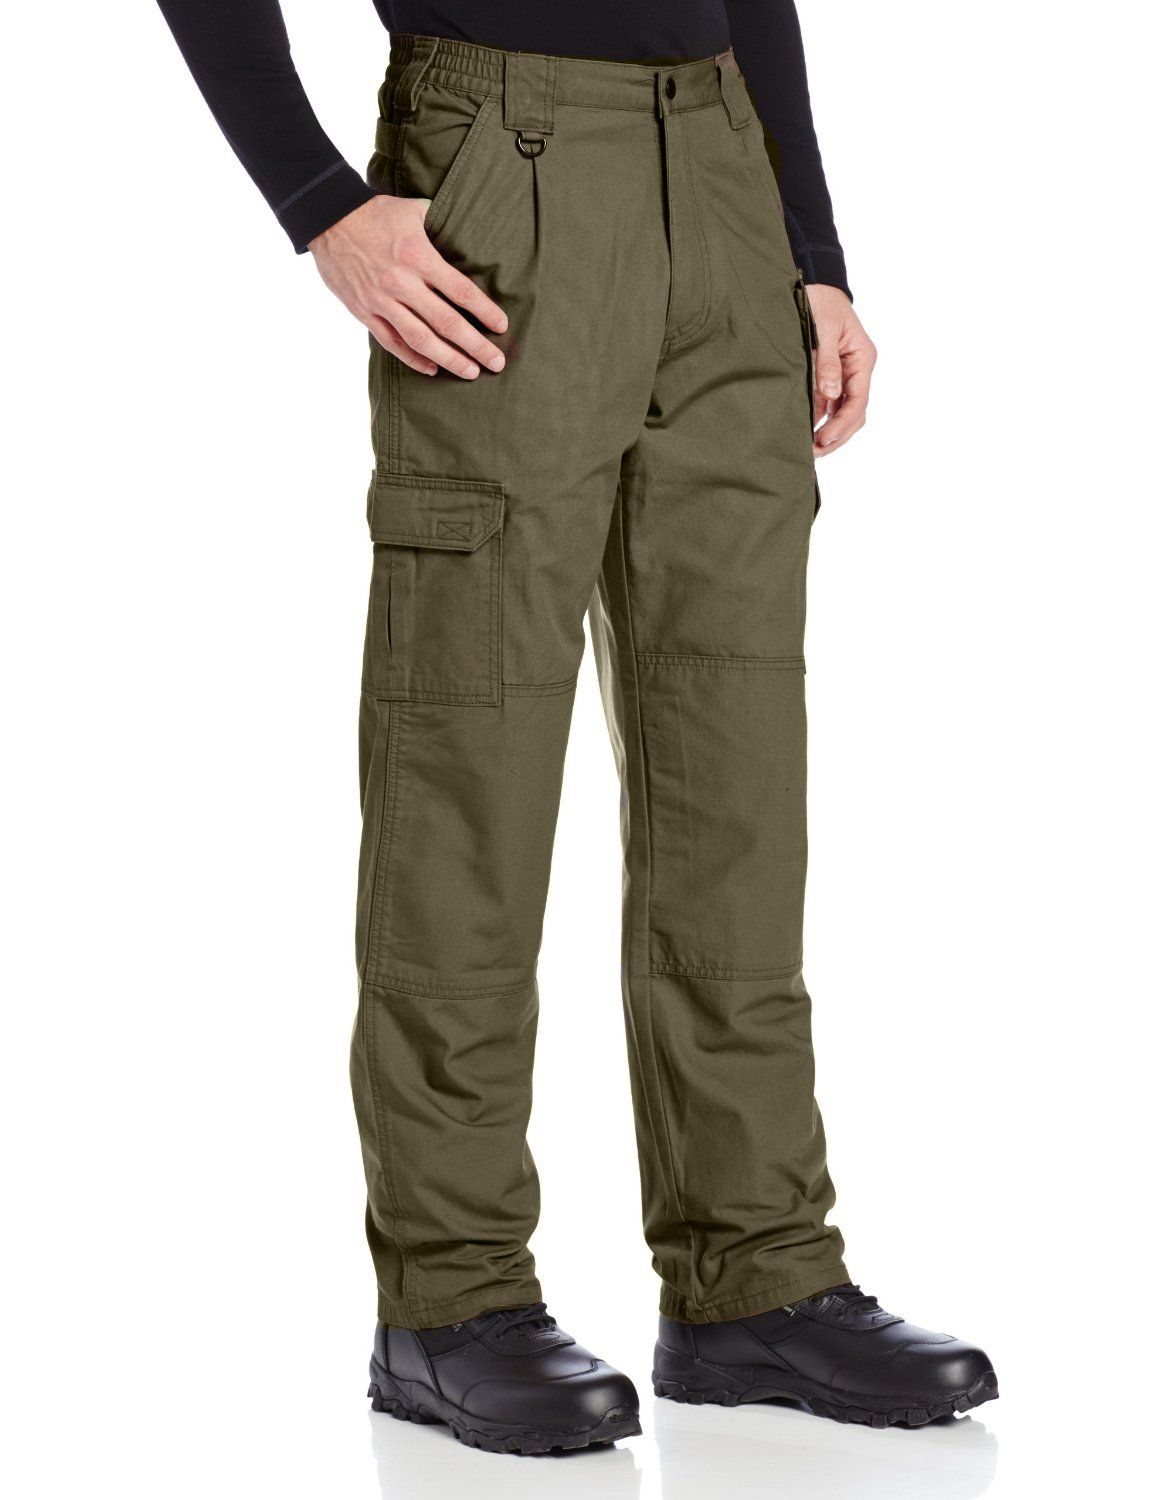 5.11 Tactical Pants,Tundra,34Wx36L by 5.11